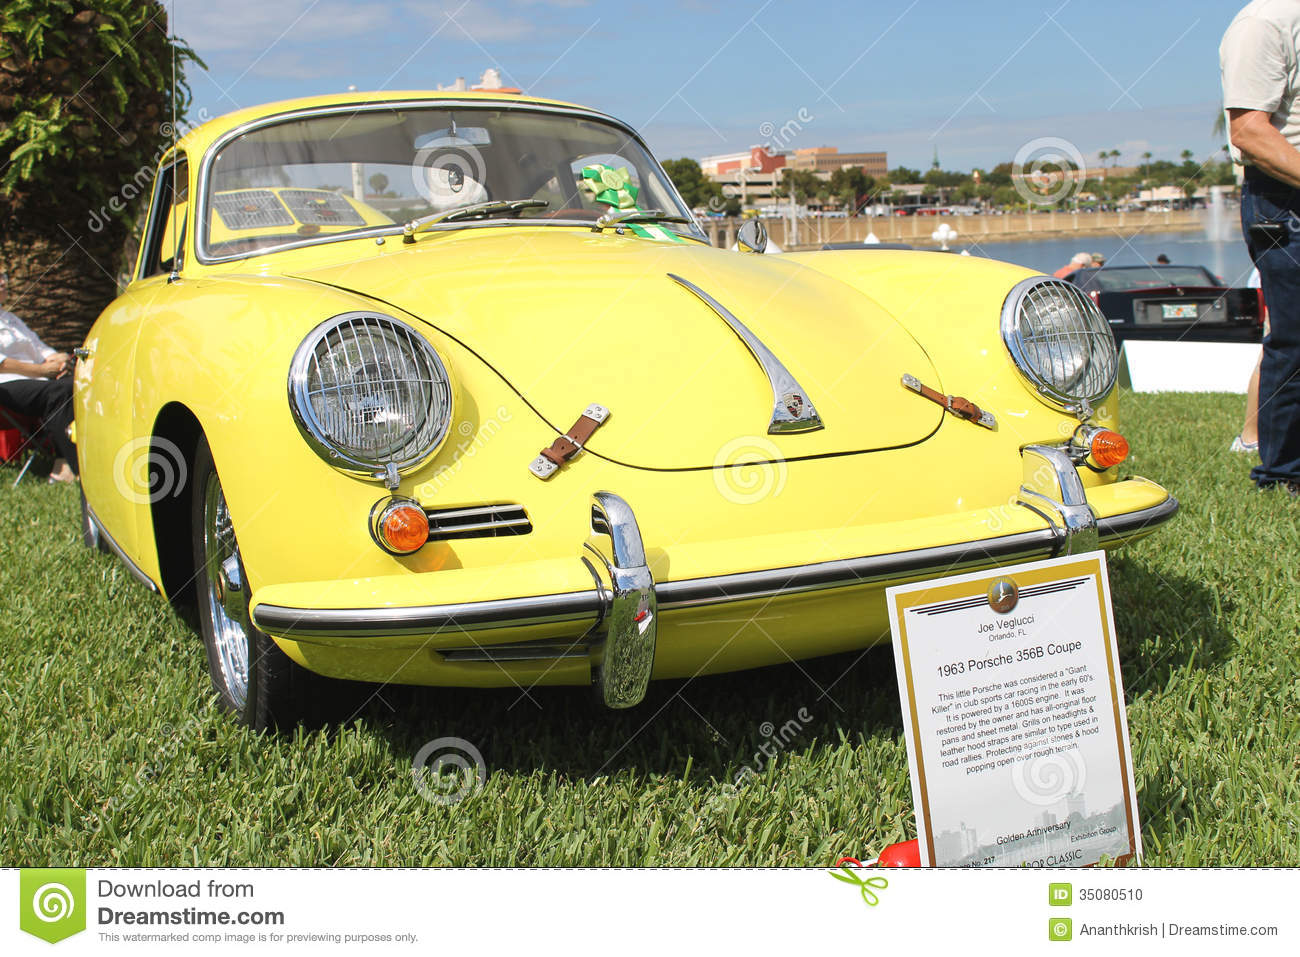 Old Porsche Sports Car At The Car Show Editorial Image Image Of - Florida classic car show orlando